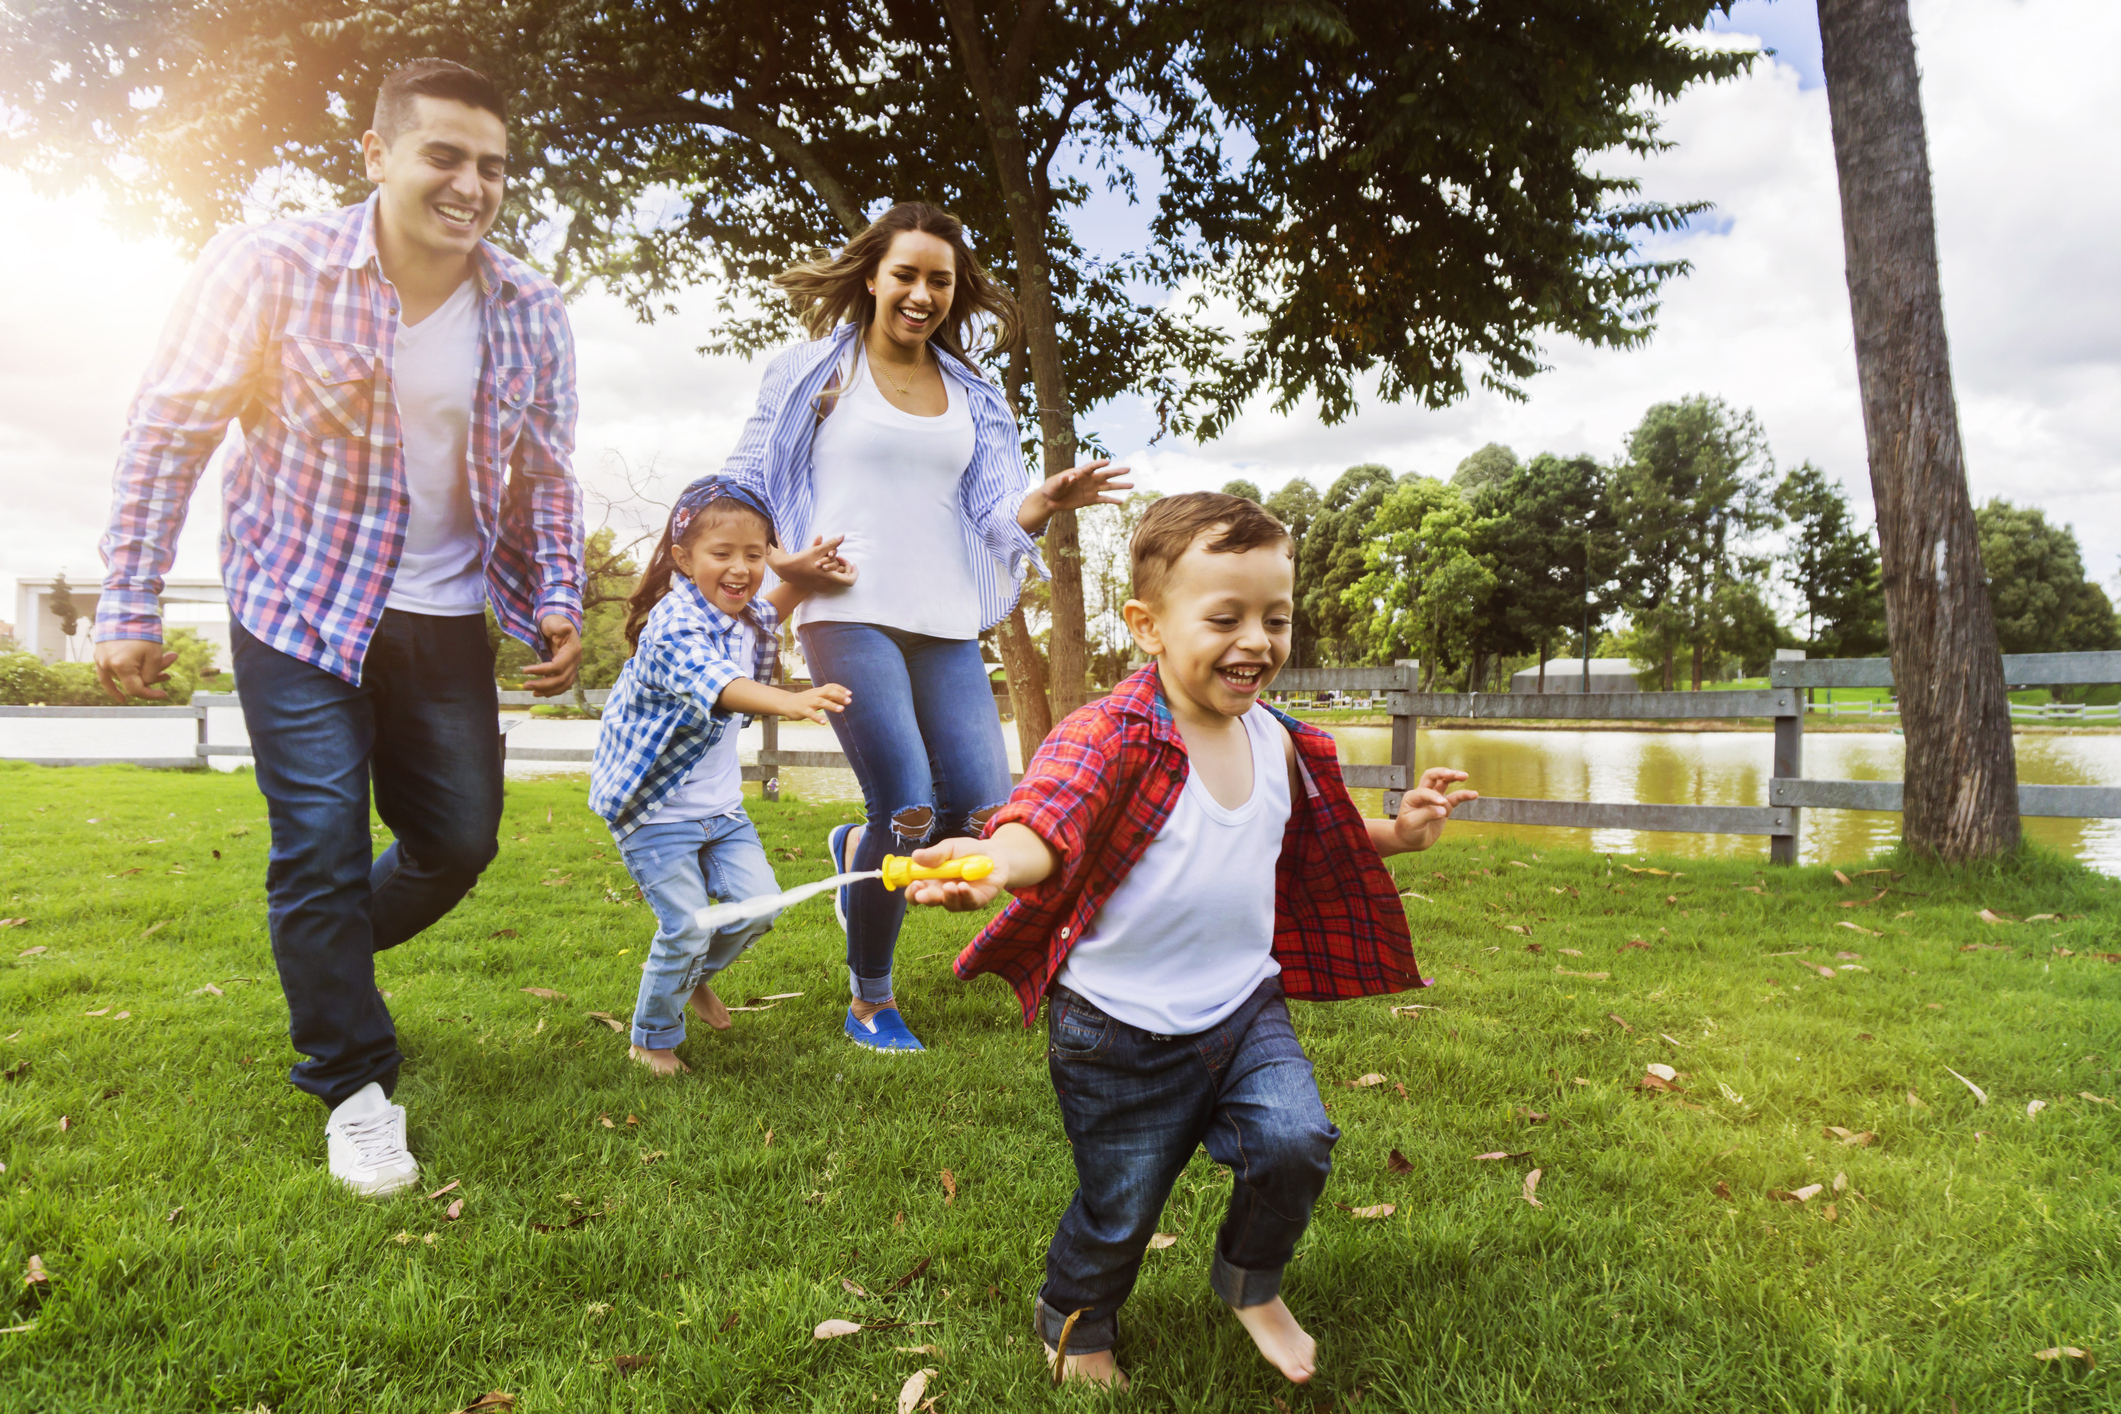 A family with two parents and two children runs through a park.